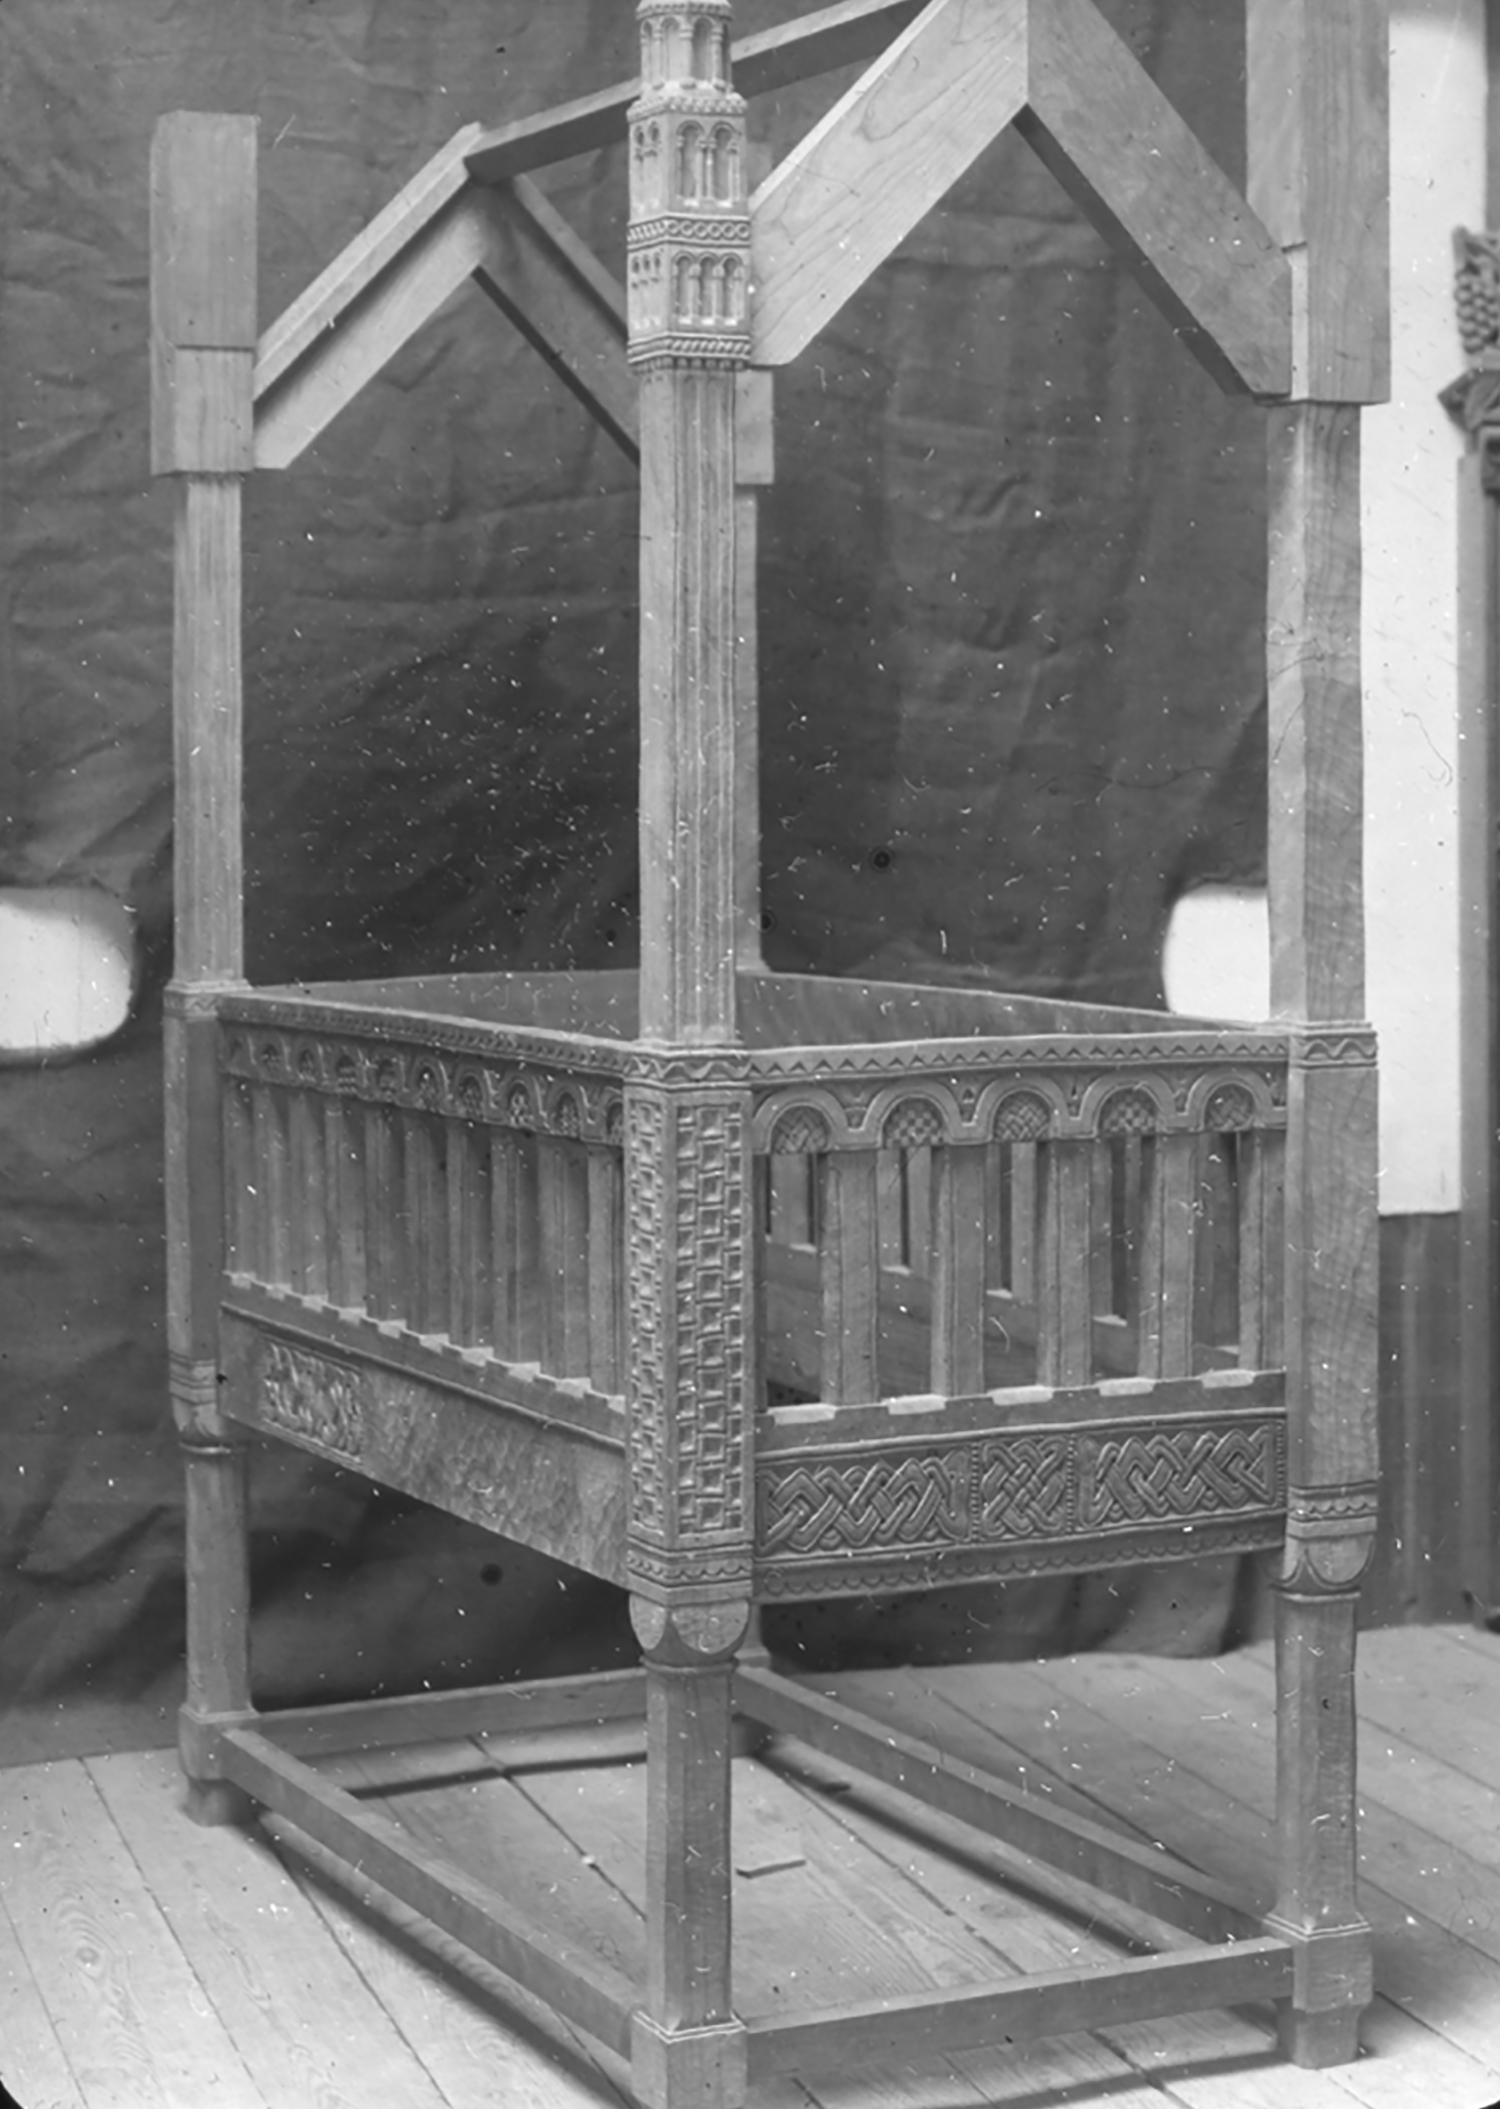 "Figure 14: Archival photograph of Lachlan Pitcairn's baby crib taken in one of the Bryn Athyn workshops. Some portions of the crib have been carved, while others are still unfinished. A closer look at some of the uncarved portions reveals the use of an adze to give the wood ""irregularities similar to hand-hammered metal"" (Cooke 1987, 315; see full quotation below)."